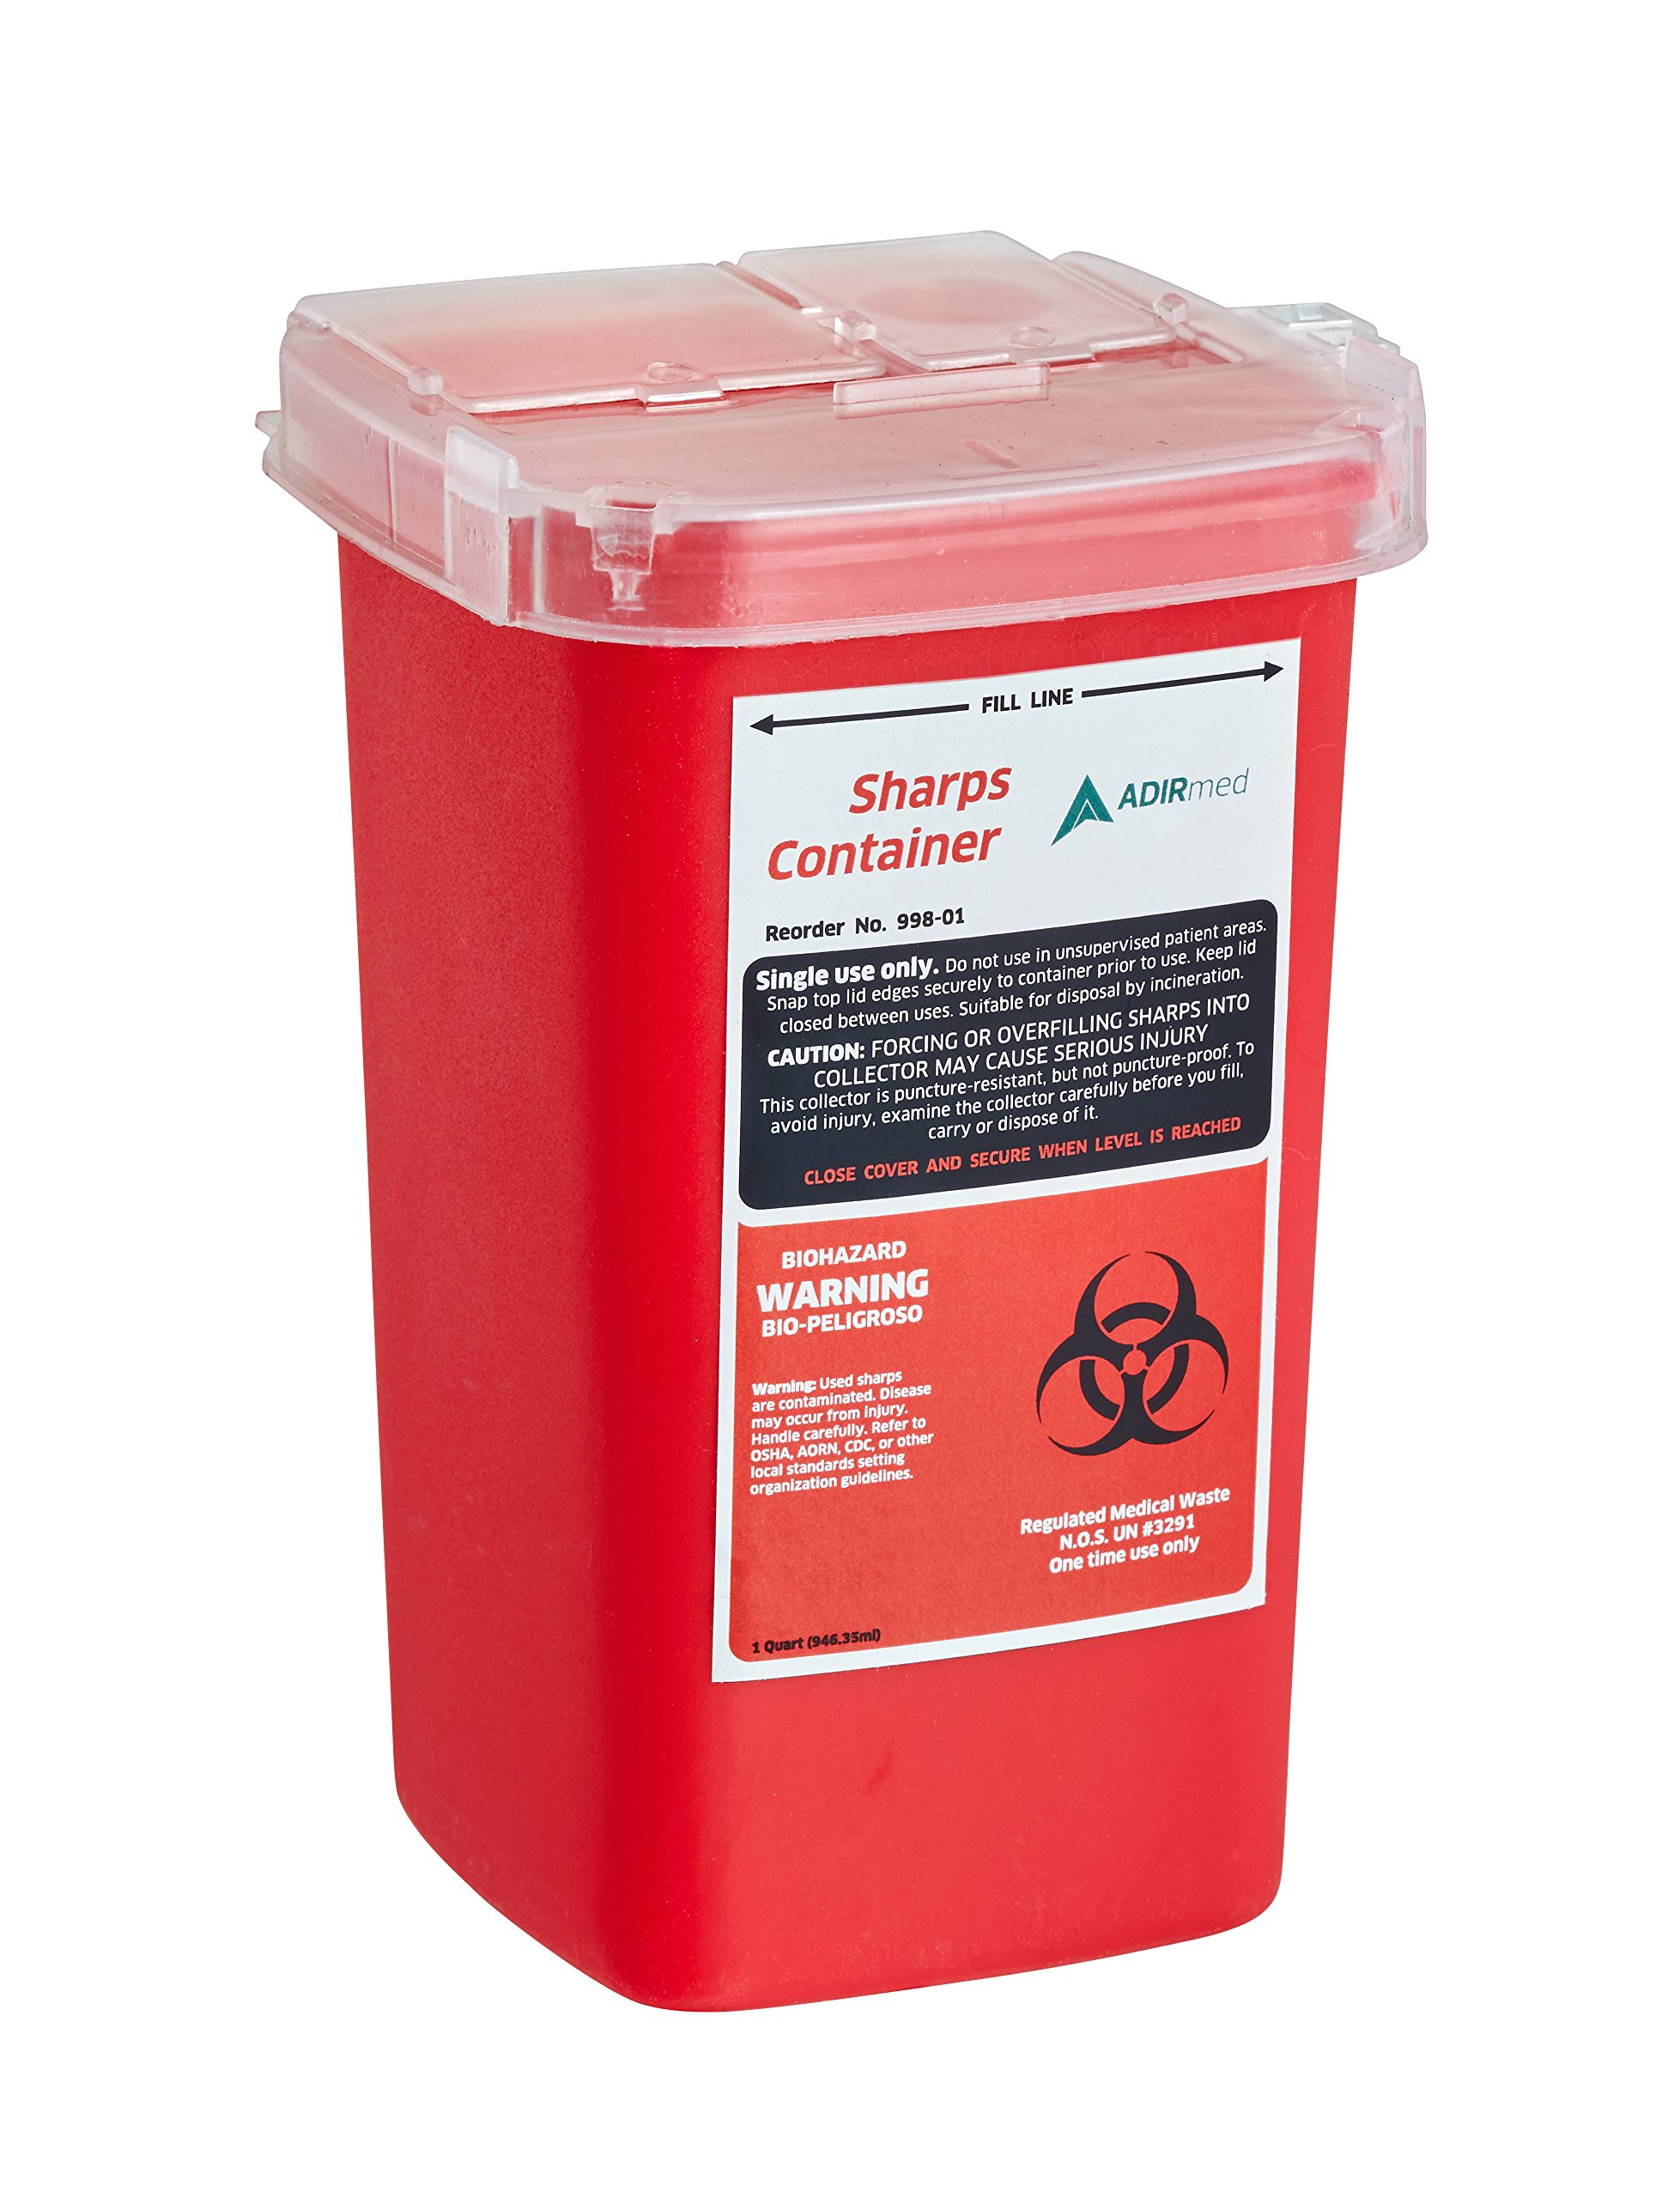 AdirMed Sharps & Needle Bio-Hazard Disposal Container 1 Quart - 1 Pack